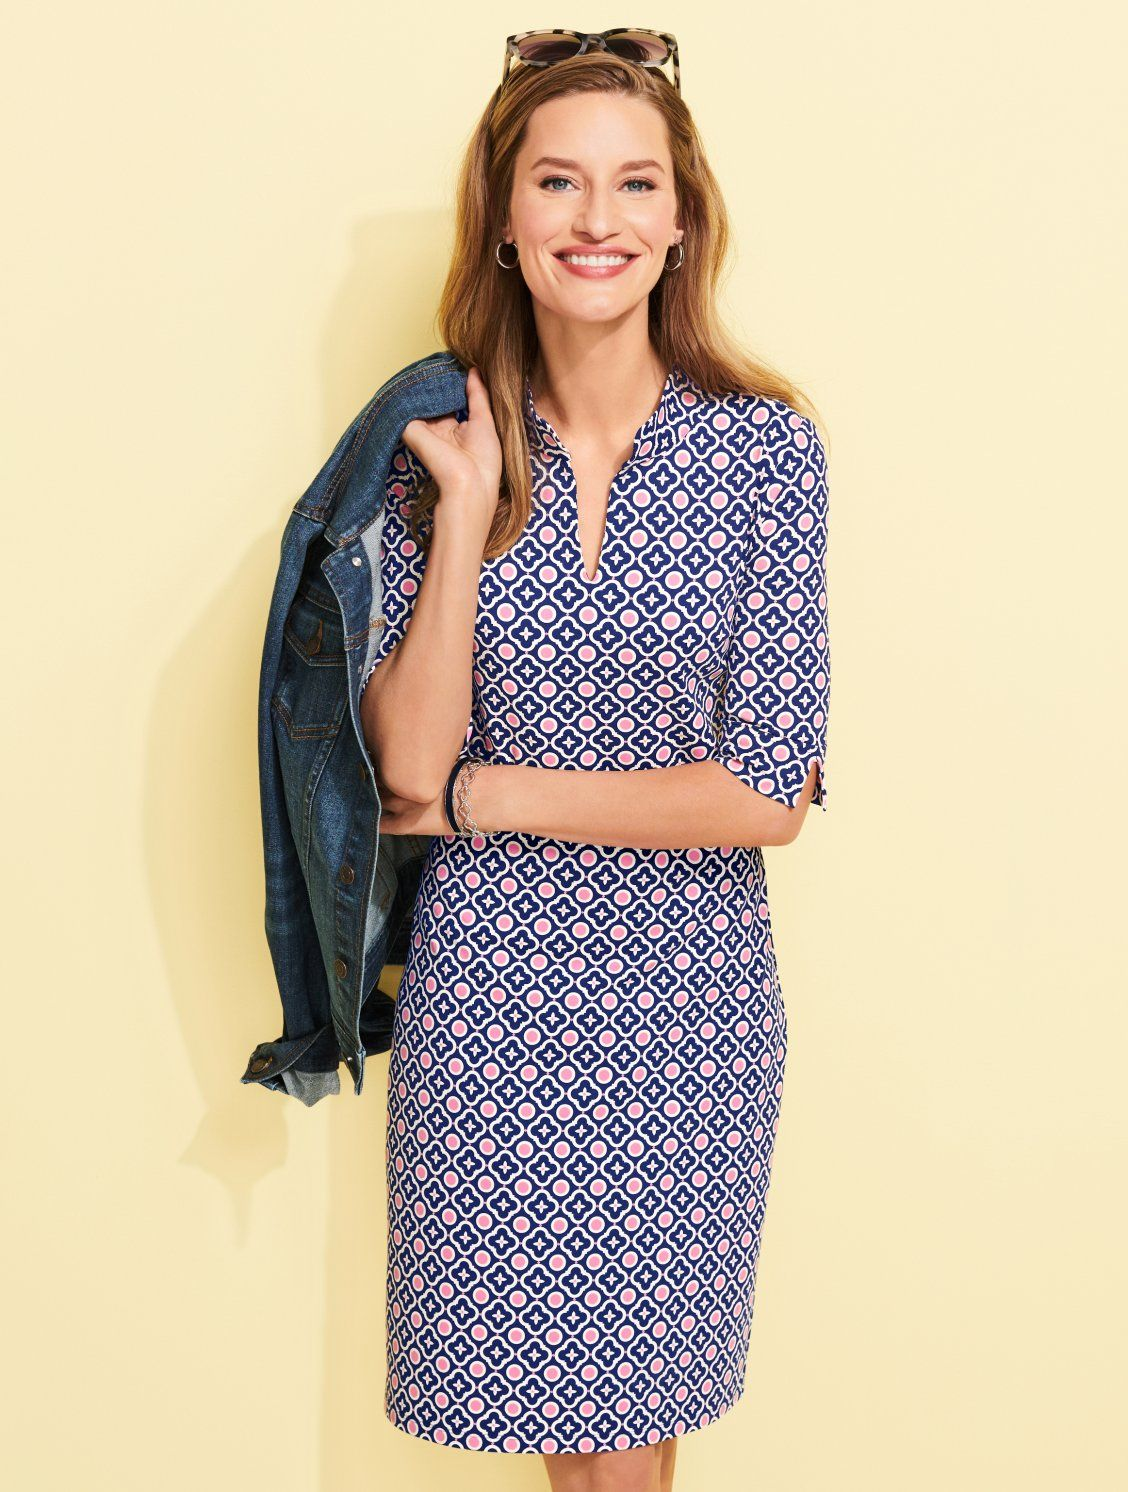 b056a785a554 This fun shift dress in a cheery geometric print is sure to brighten your  day. Easy short sleeves offer comfort and coverage. Add your favorite  jewelry for ...